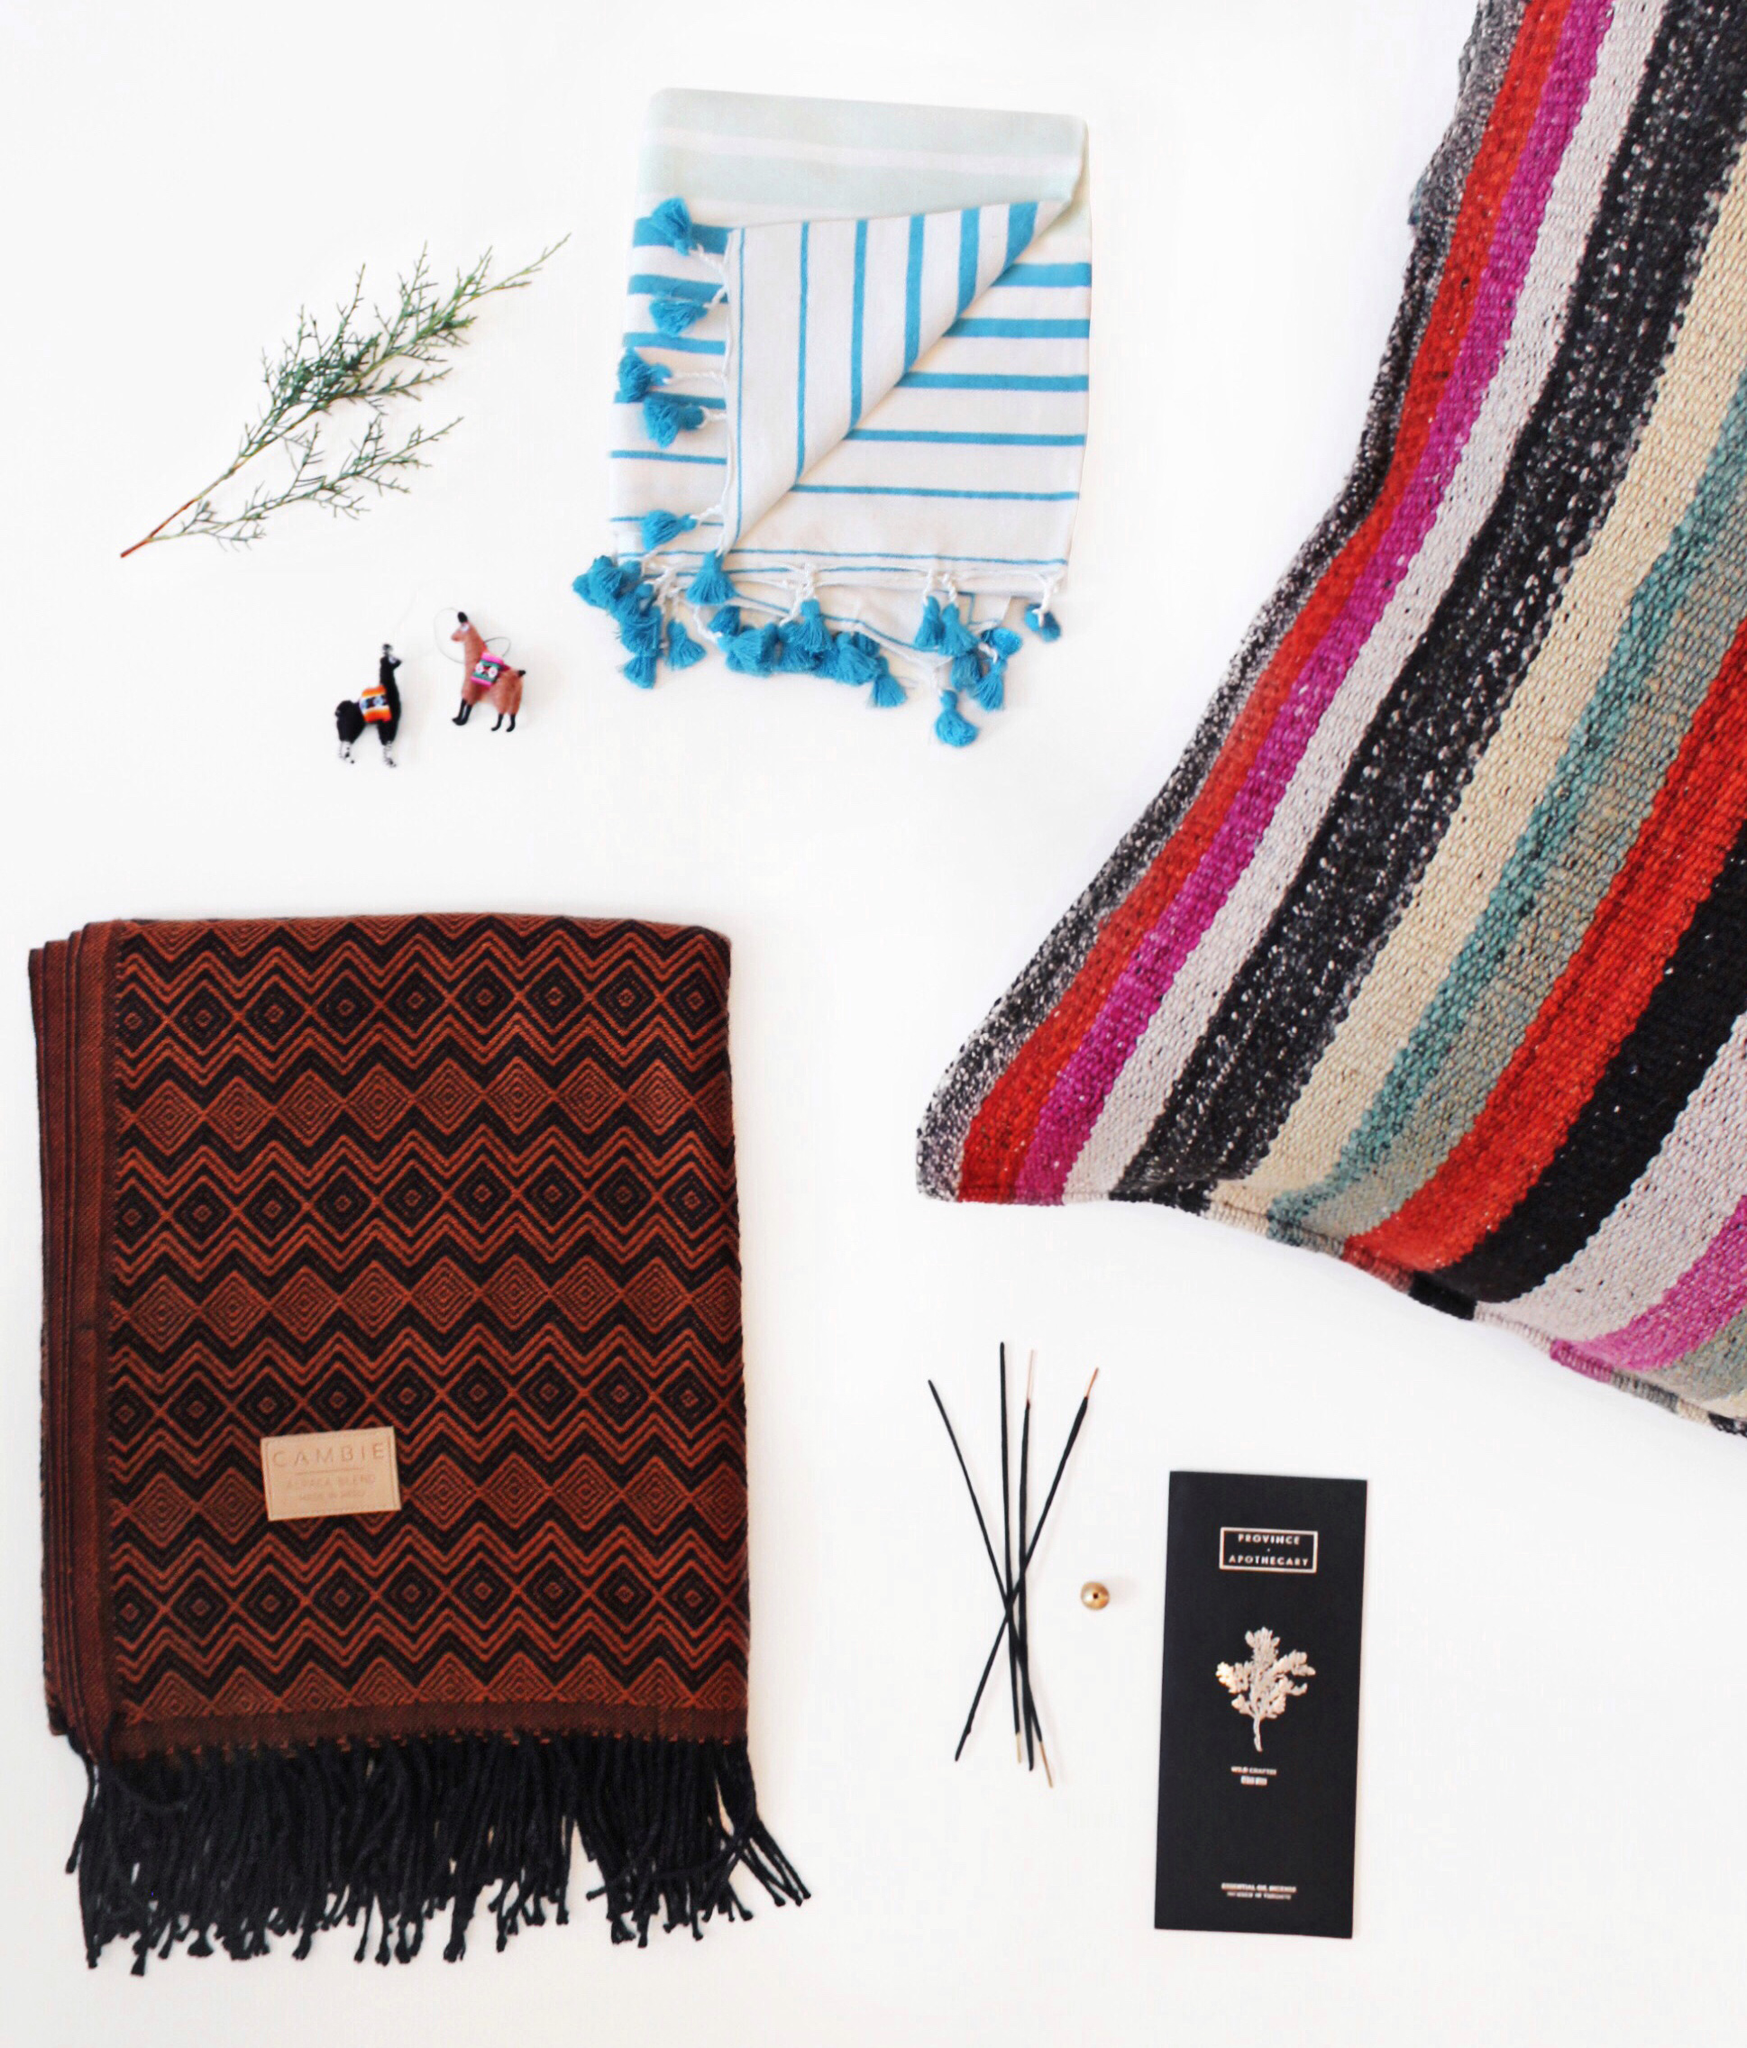 Shayna Stevenson Cambie Design holiday gift guide